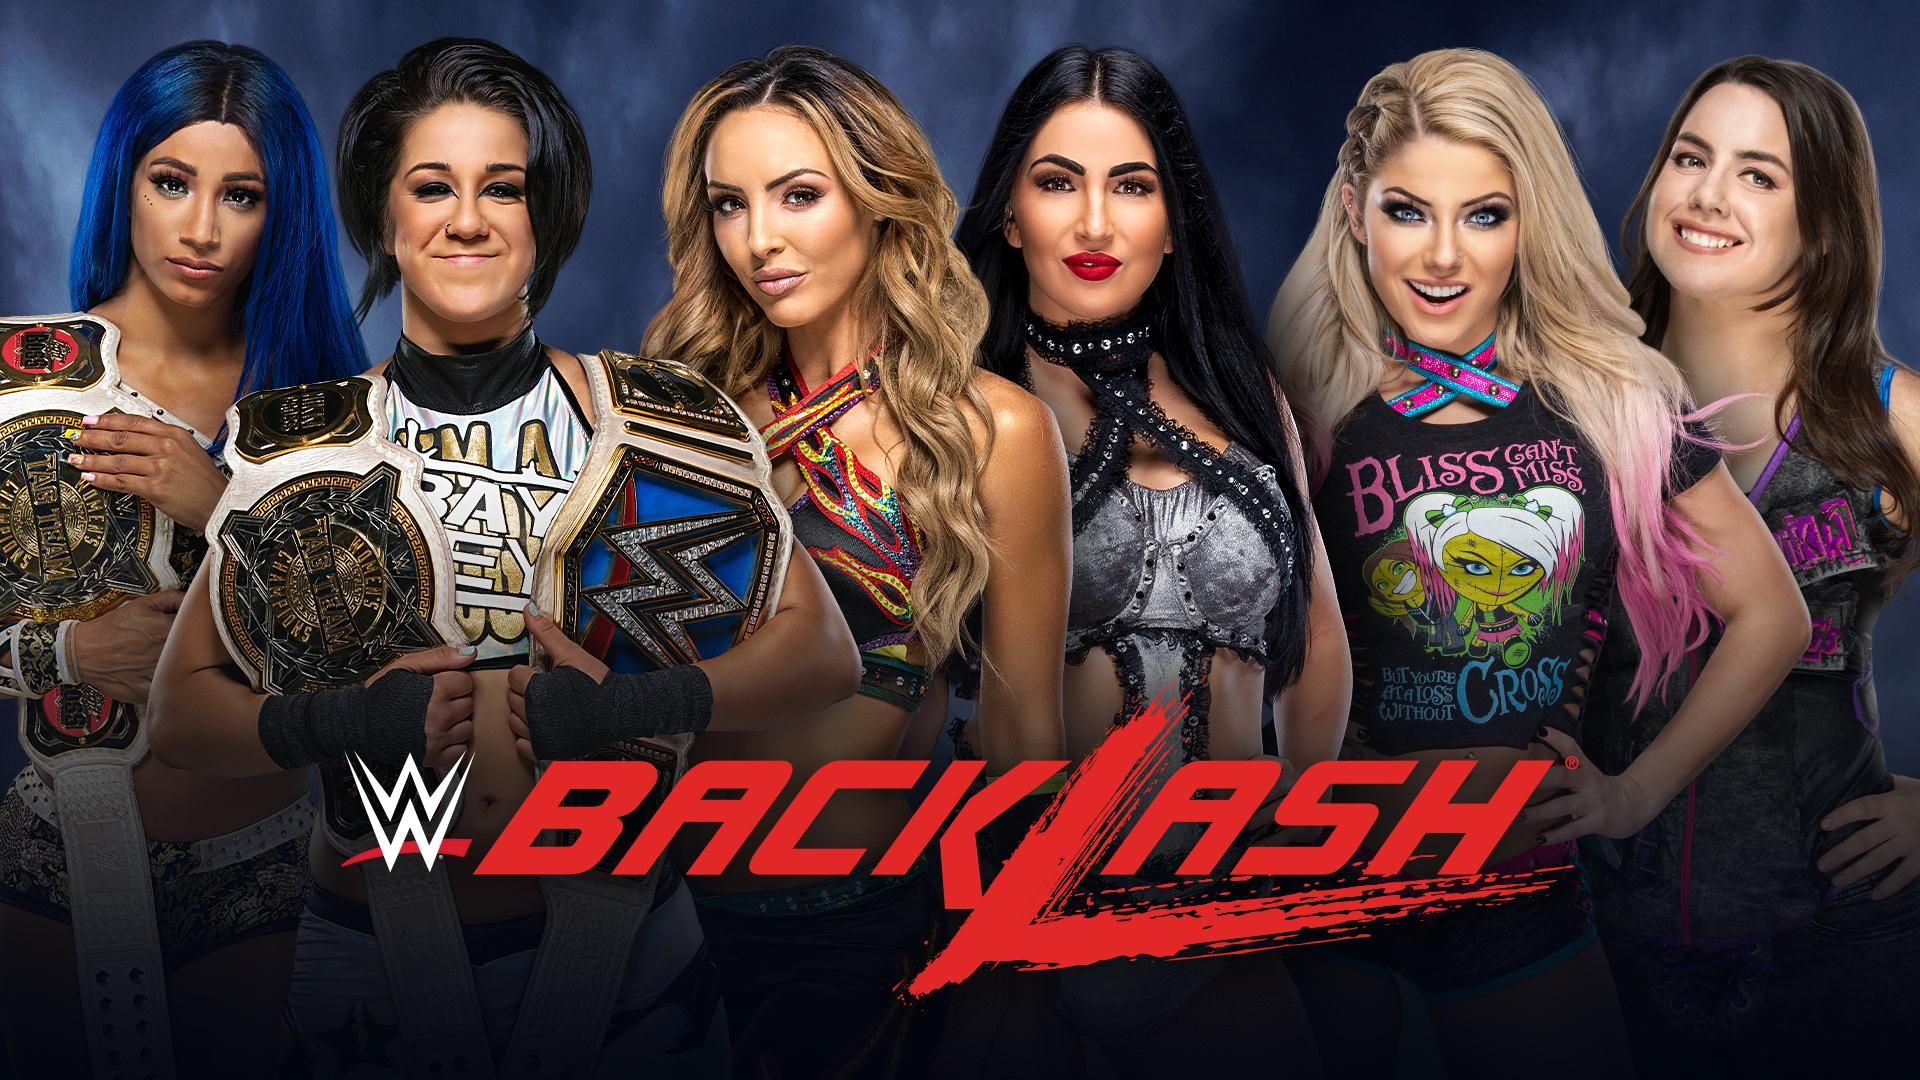 WWE Women's Tag Title match set for Backlash